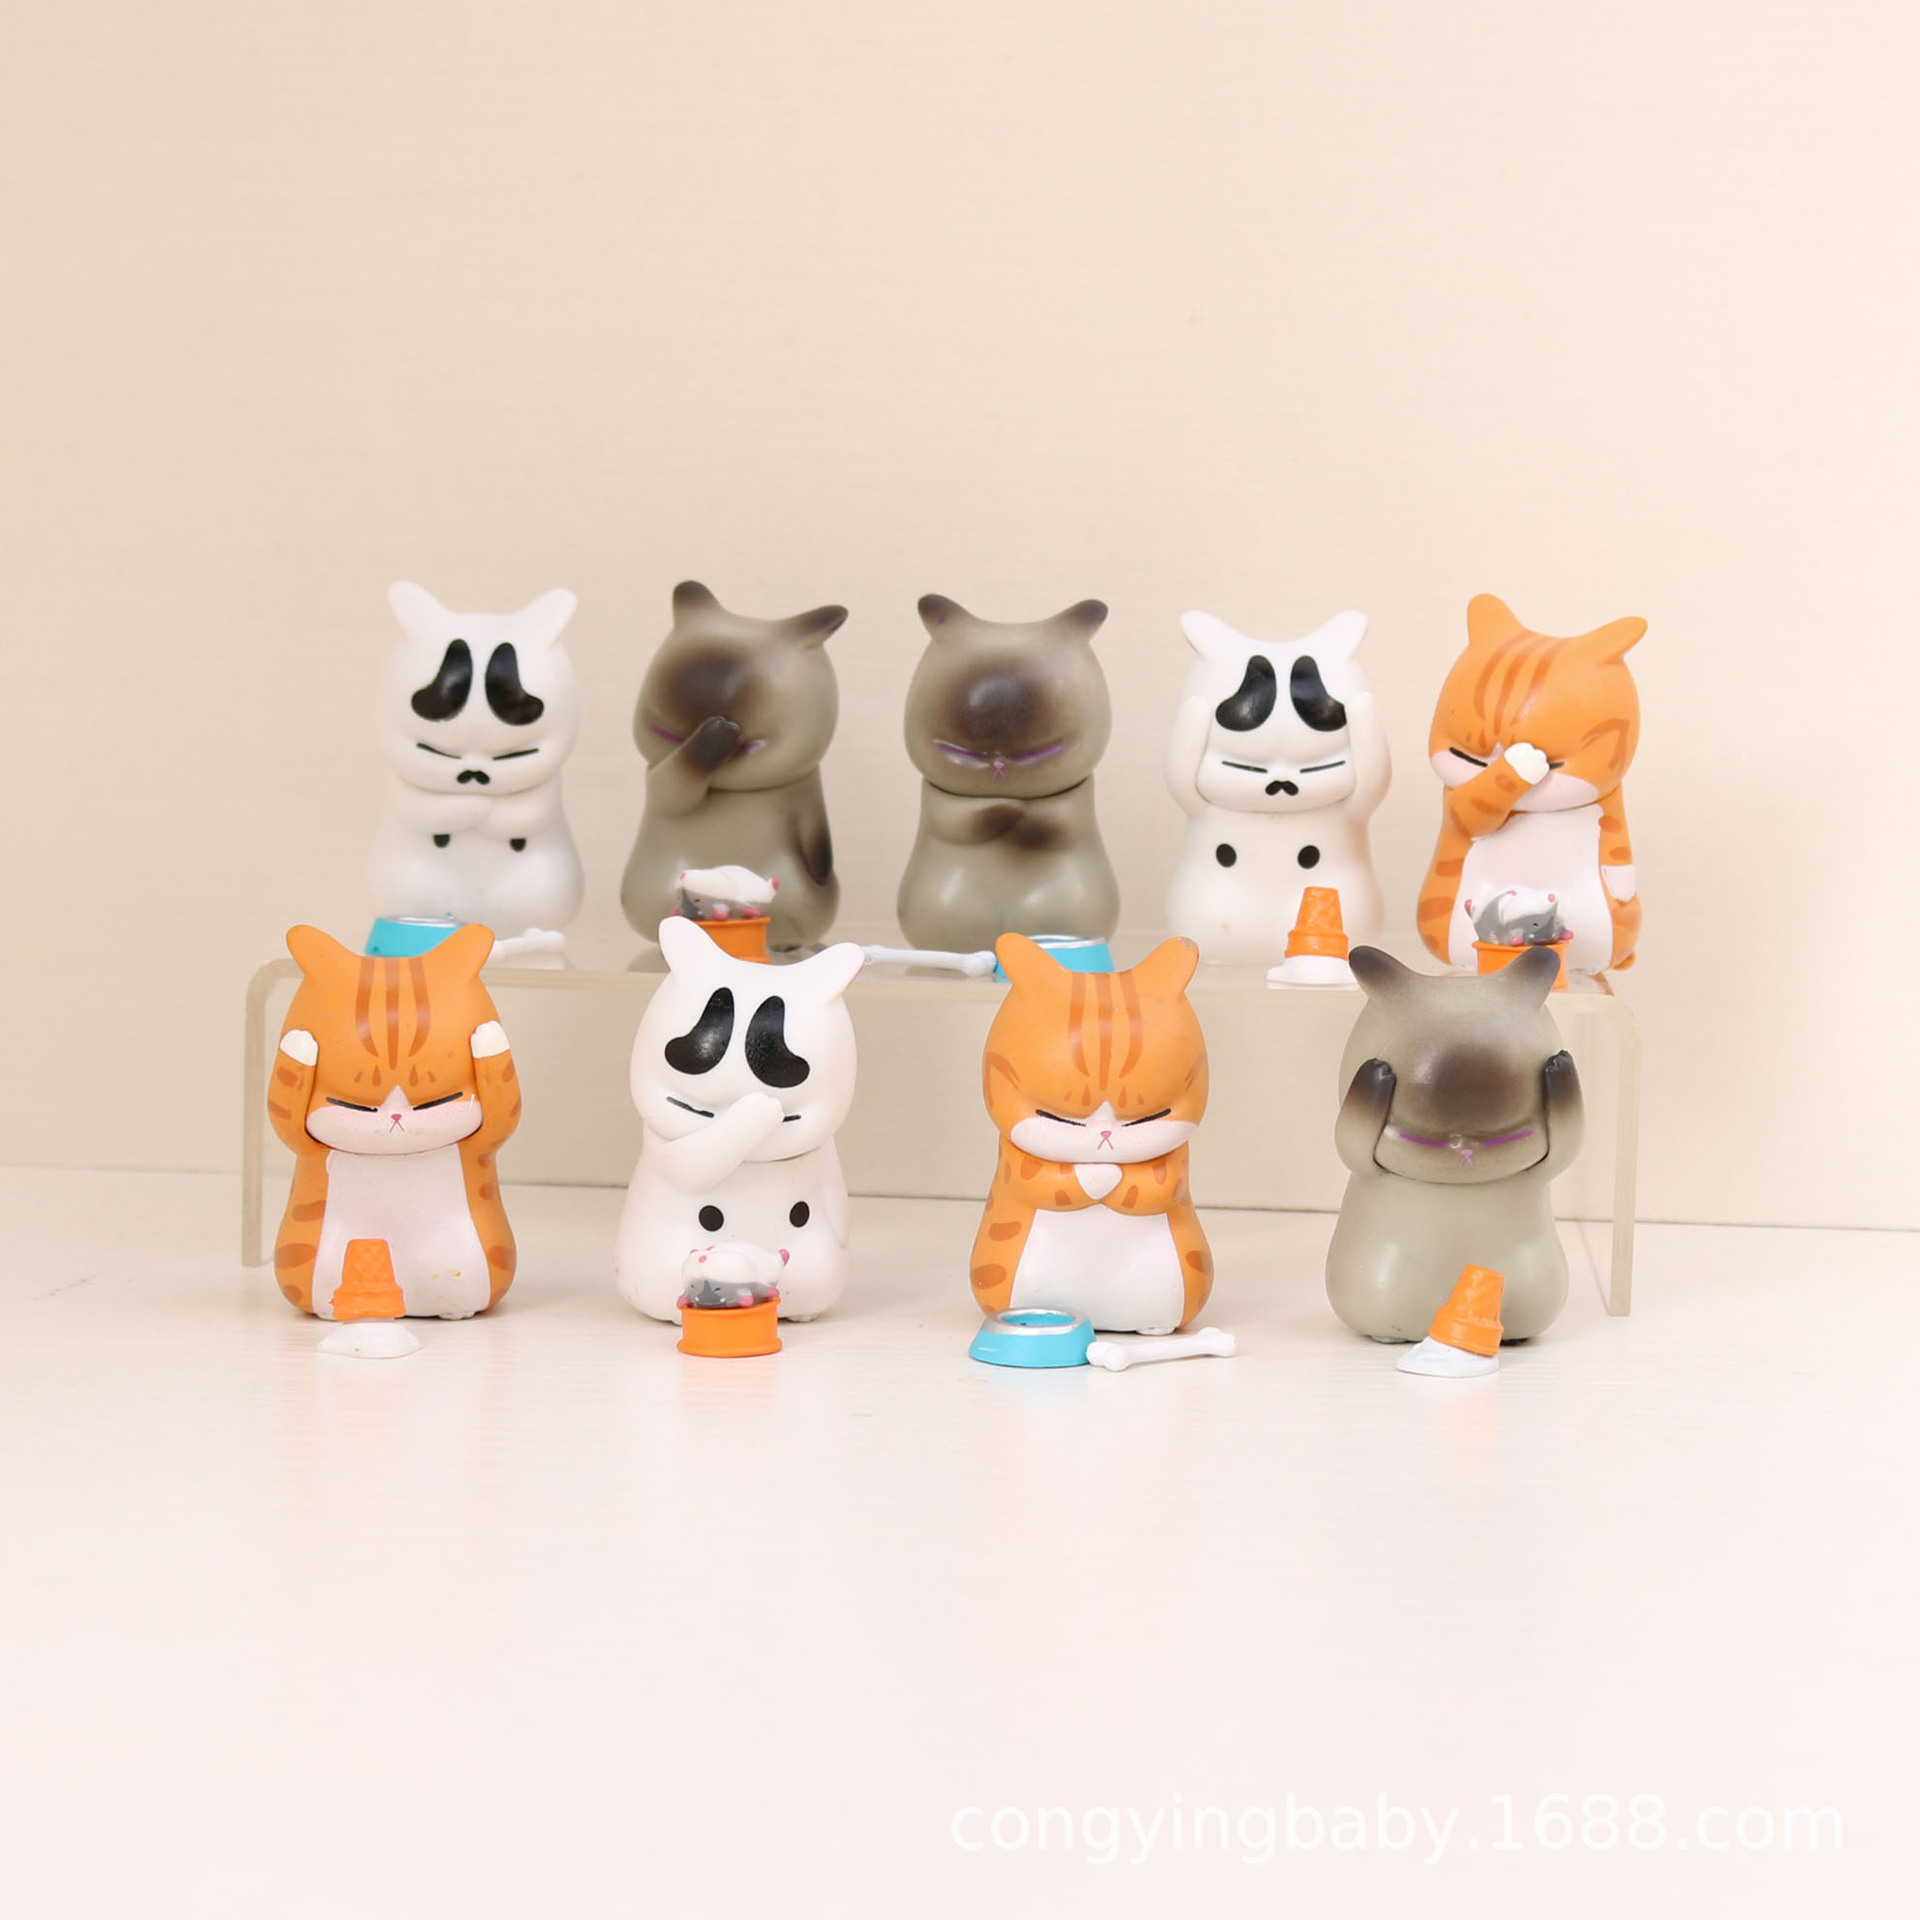 Super-Cute Animal Toy for Study Room Decorations